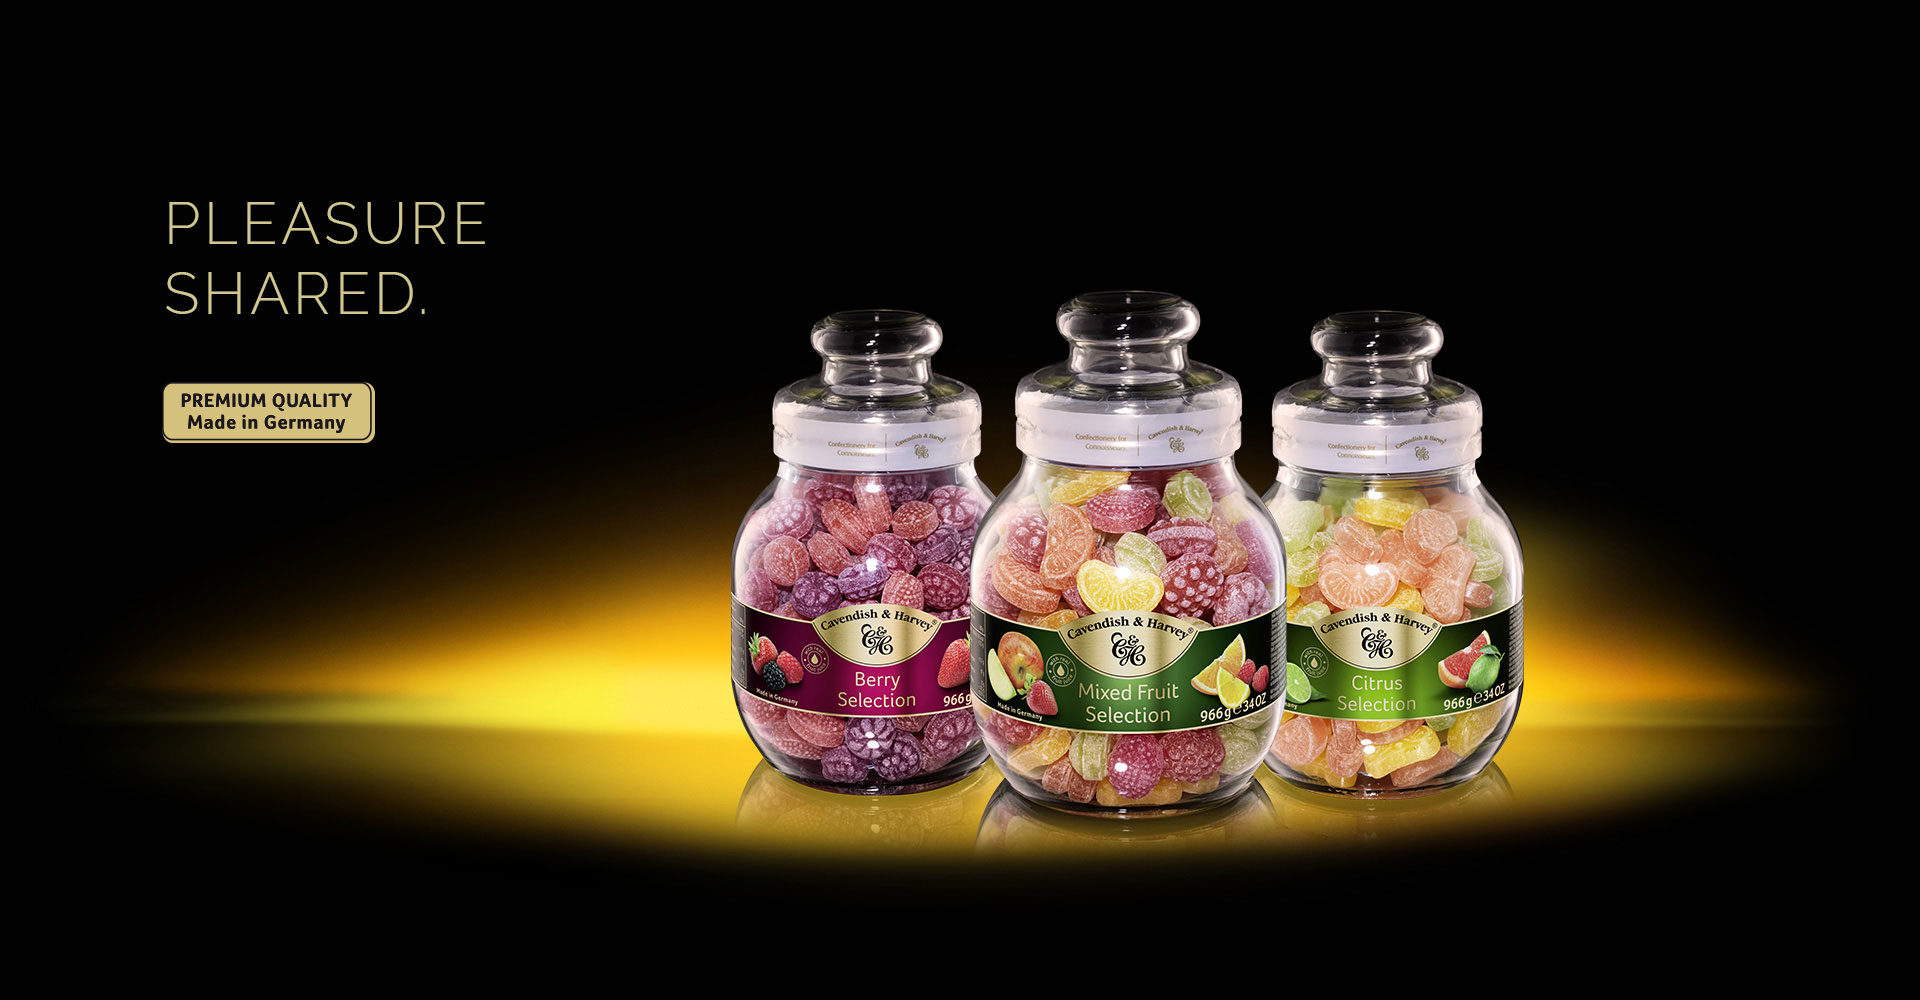 Confectionery in Jars